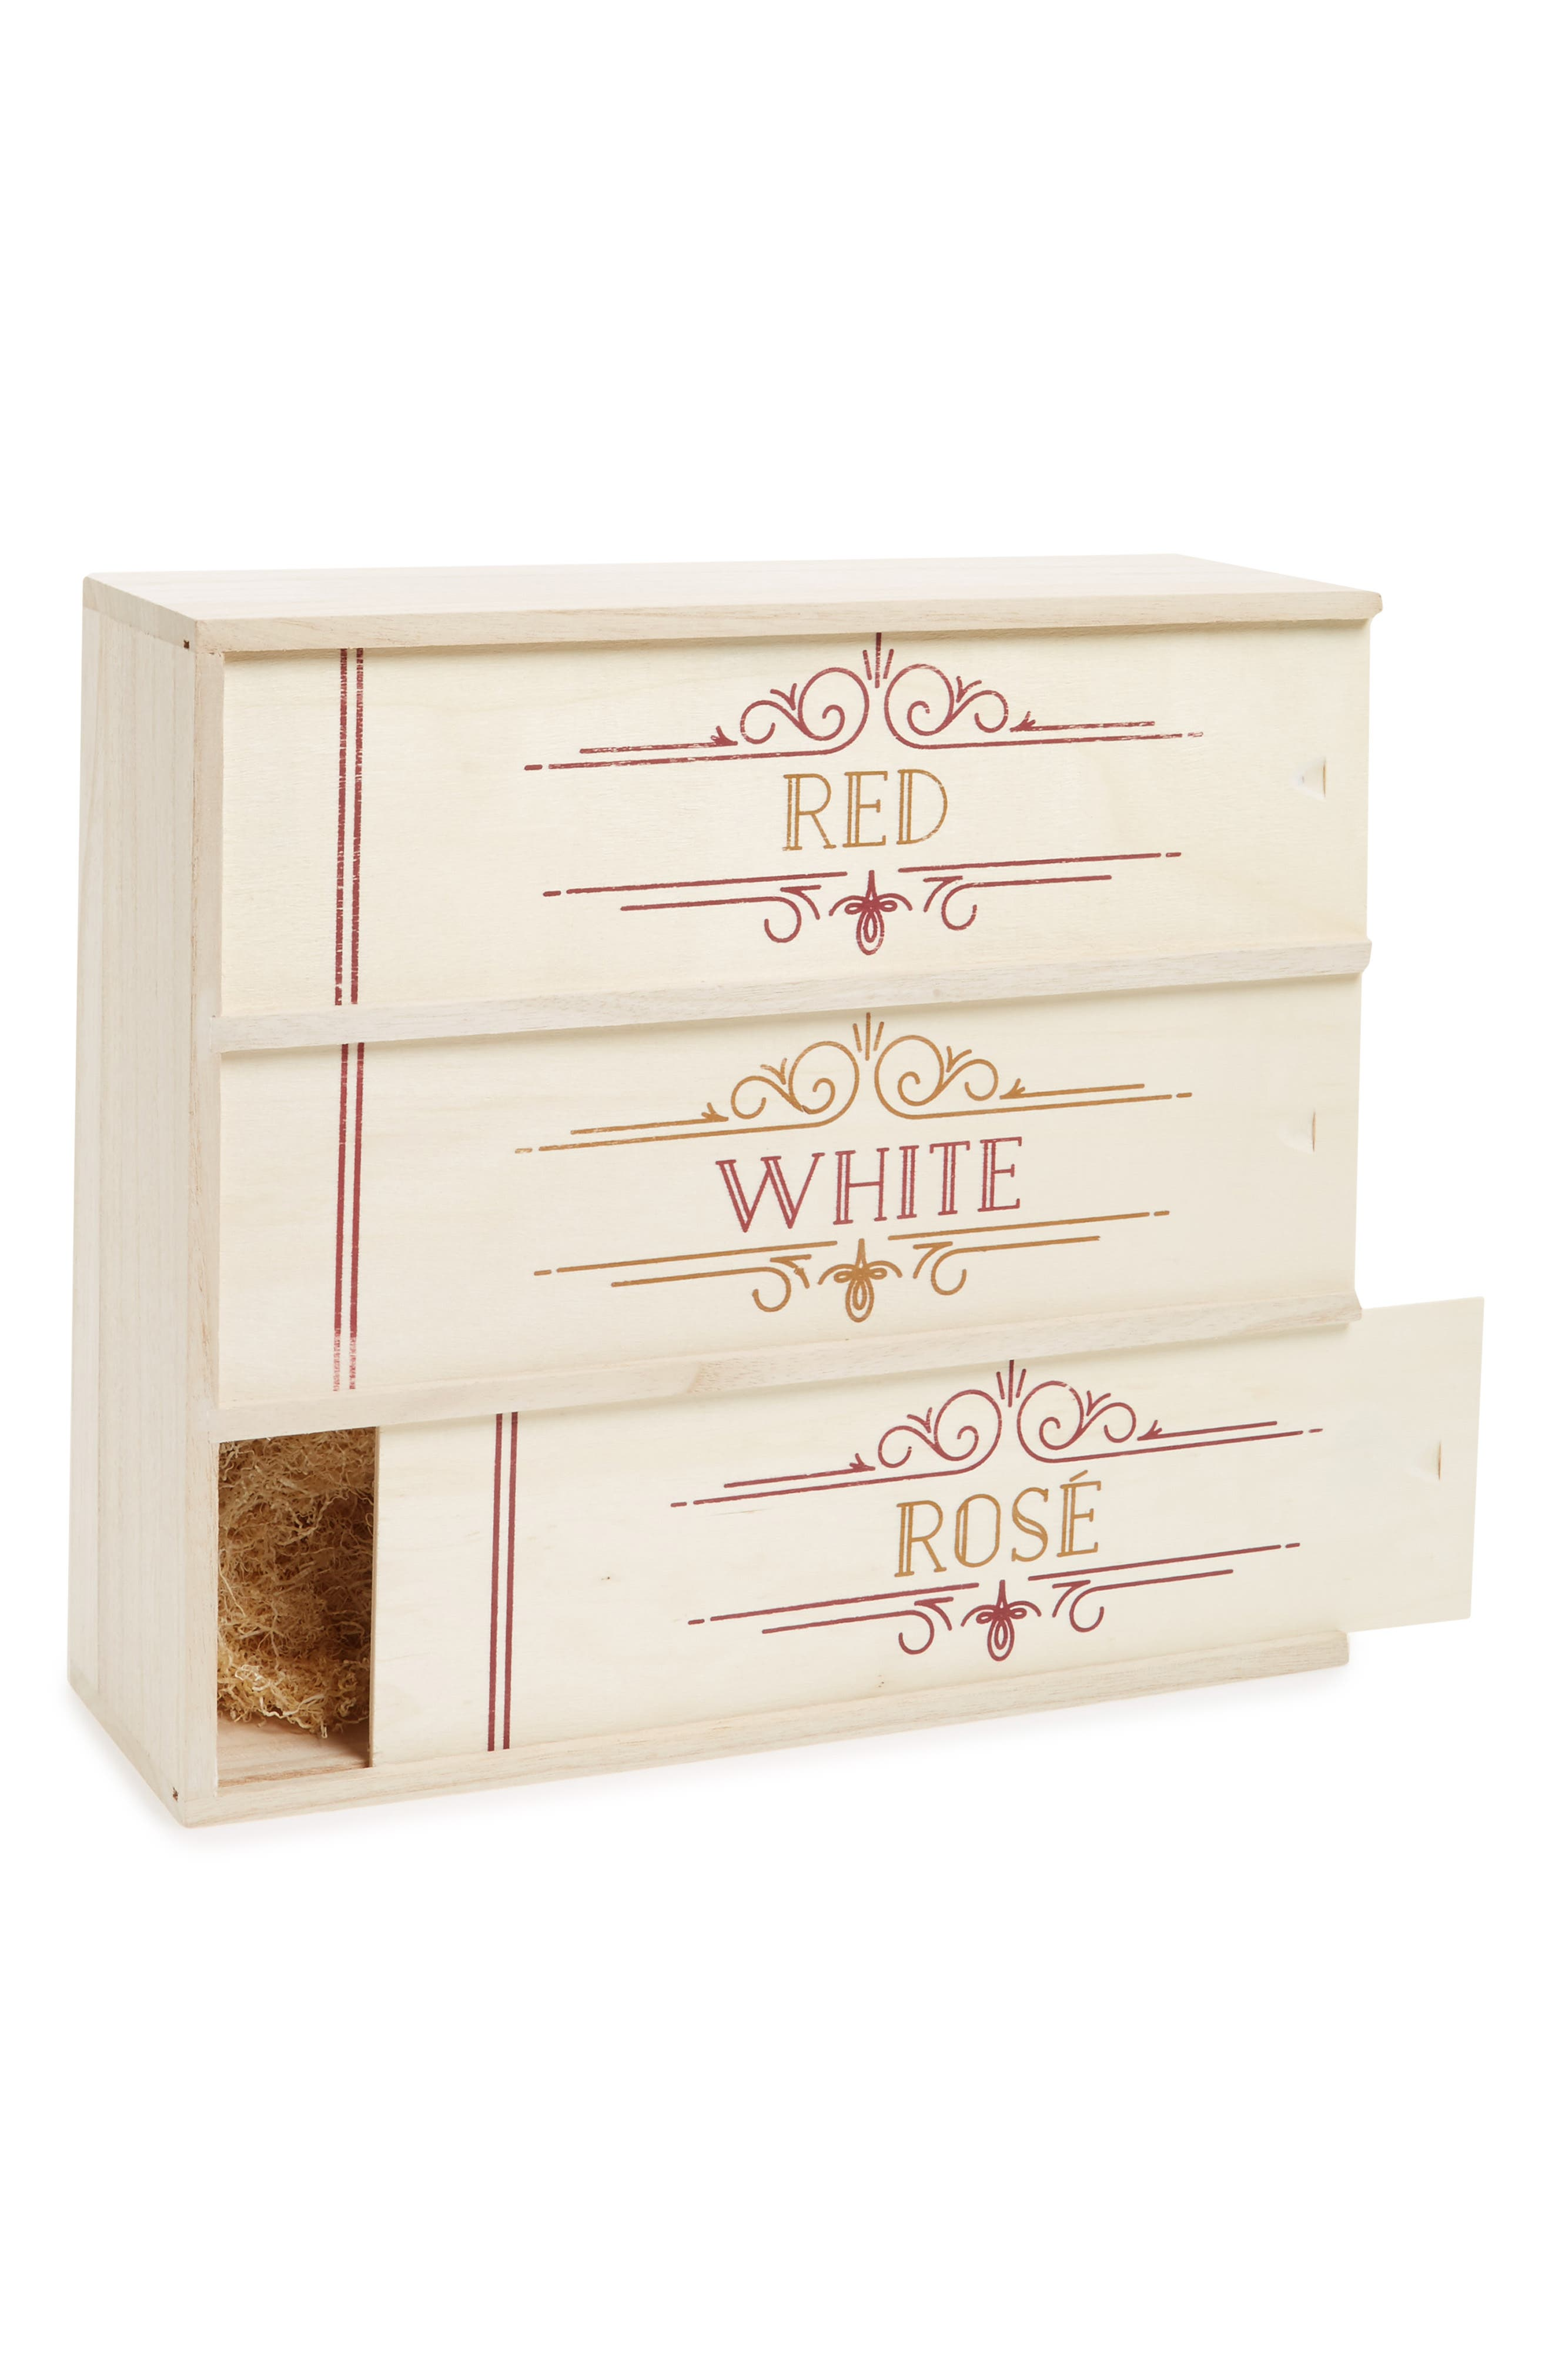 true fabrications Red, White & Rosé Wine Box,                             Main thumbnail 1, color,                             200